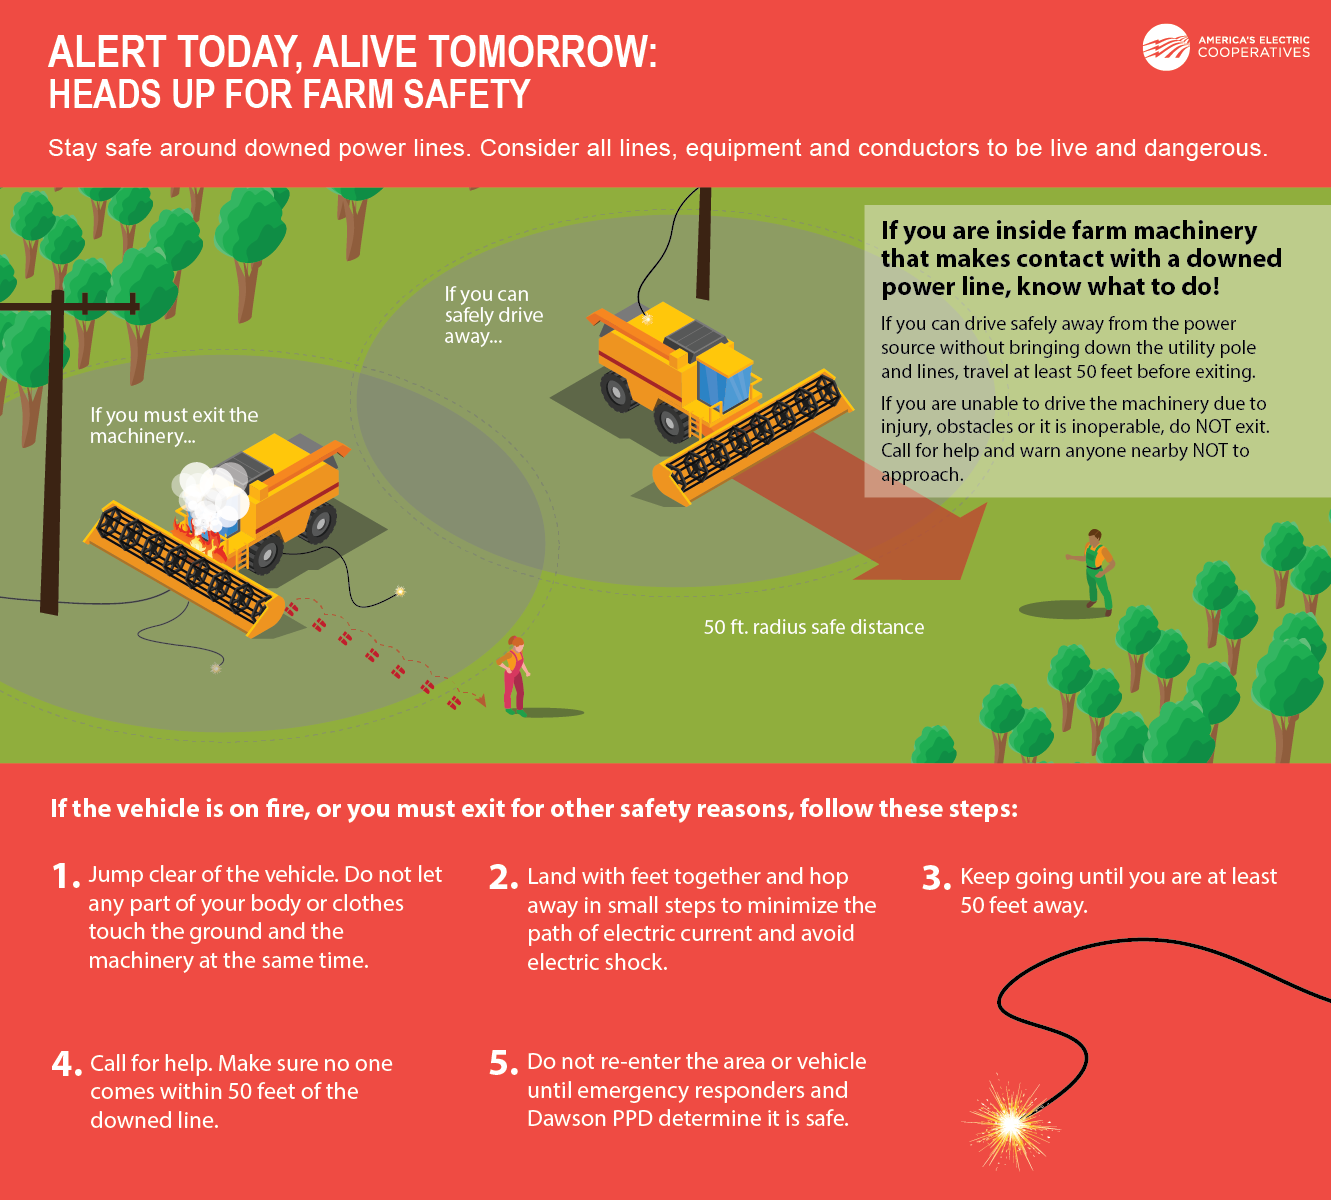 Alert today, alive tomorrow: Heads up for farm safety Stay safe around downed power lines. Consider all lines, equipment and conductors to be live and dangerous. If you are inside farm machinery that makes contact with a downed power line, know what to do! If you can drive safely away from the power source without bringing down the utility pole and lines, travel at least 50 feet before exiting. If you are unable to drive the machinery due to injury, obstacles or it is inoperable, do NOT exit. Call for help and warn anyone nearby NOT to approach. If the vehicle is on fire, or you must exit for other safety reasons, follow these steps: Jump clear of the vehicle. Do not let any part of your body or clothes touch the ground and the machinery at the same time. Land with feet together and hop away in small steps to minimize the path of electric current and avoid electric shock. Keep going until you are at least 50 feet away. Call for help. Make sure no one comes within 50 feet of the downed line. Do not re-enter the area or vehicle until emergency responders and Dawson PPD determine it is safe.